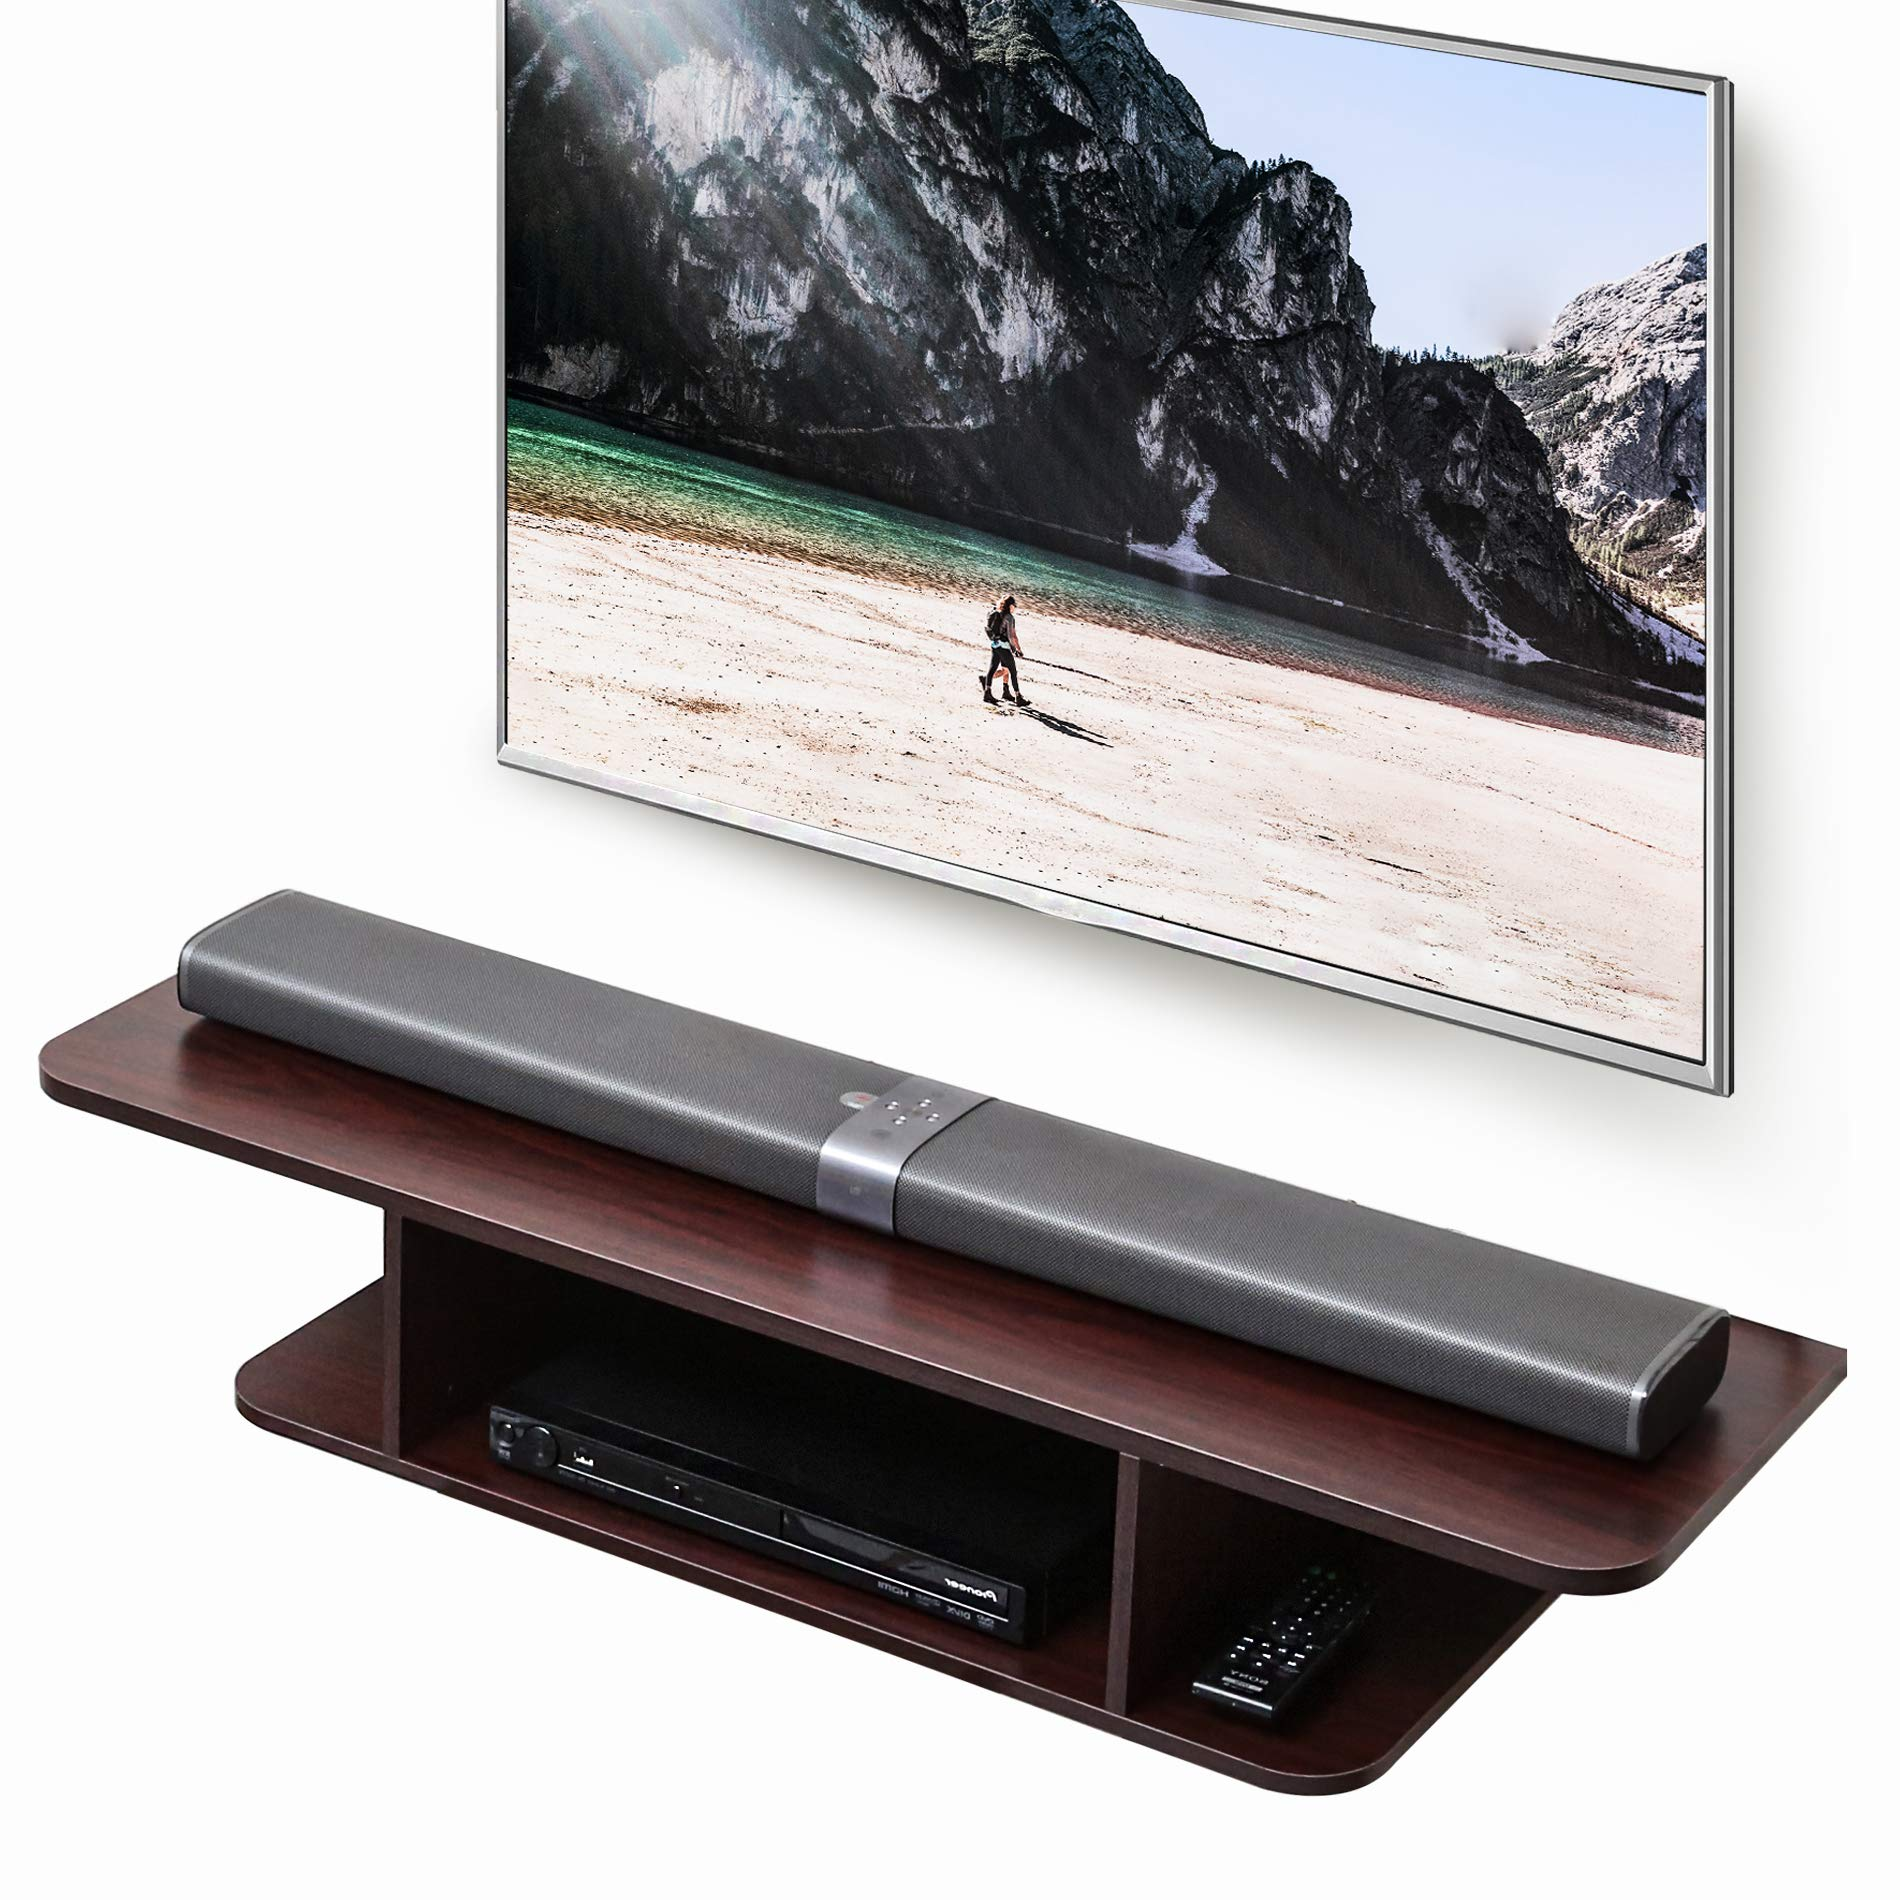 FITUEYES Wall Mounted Media Console,Floating TV Stand Component Shelf,Brown ,DS210502WW by FITUEYES